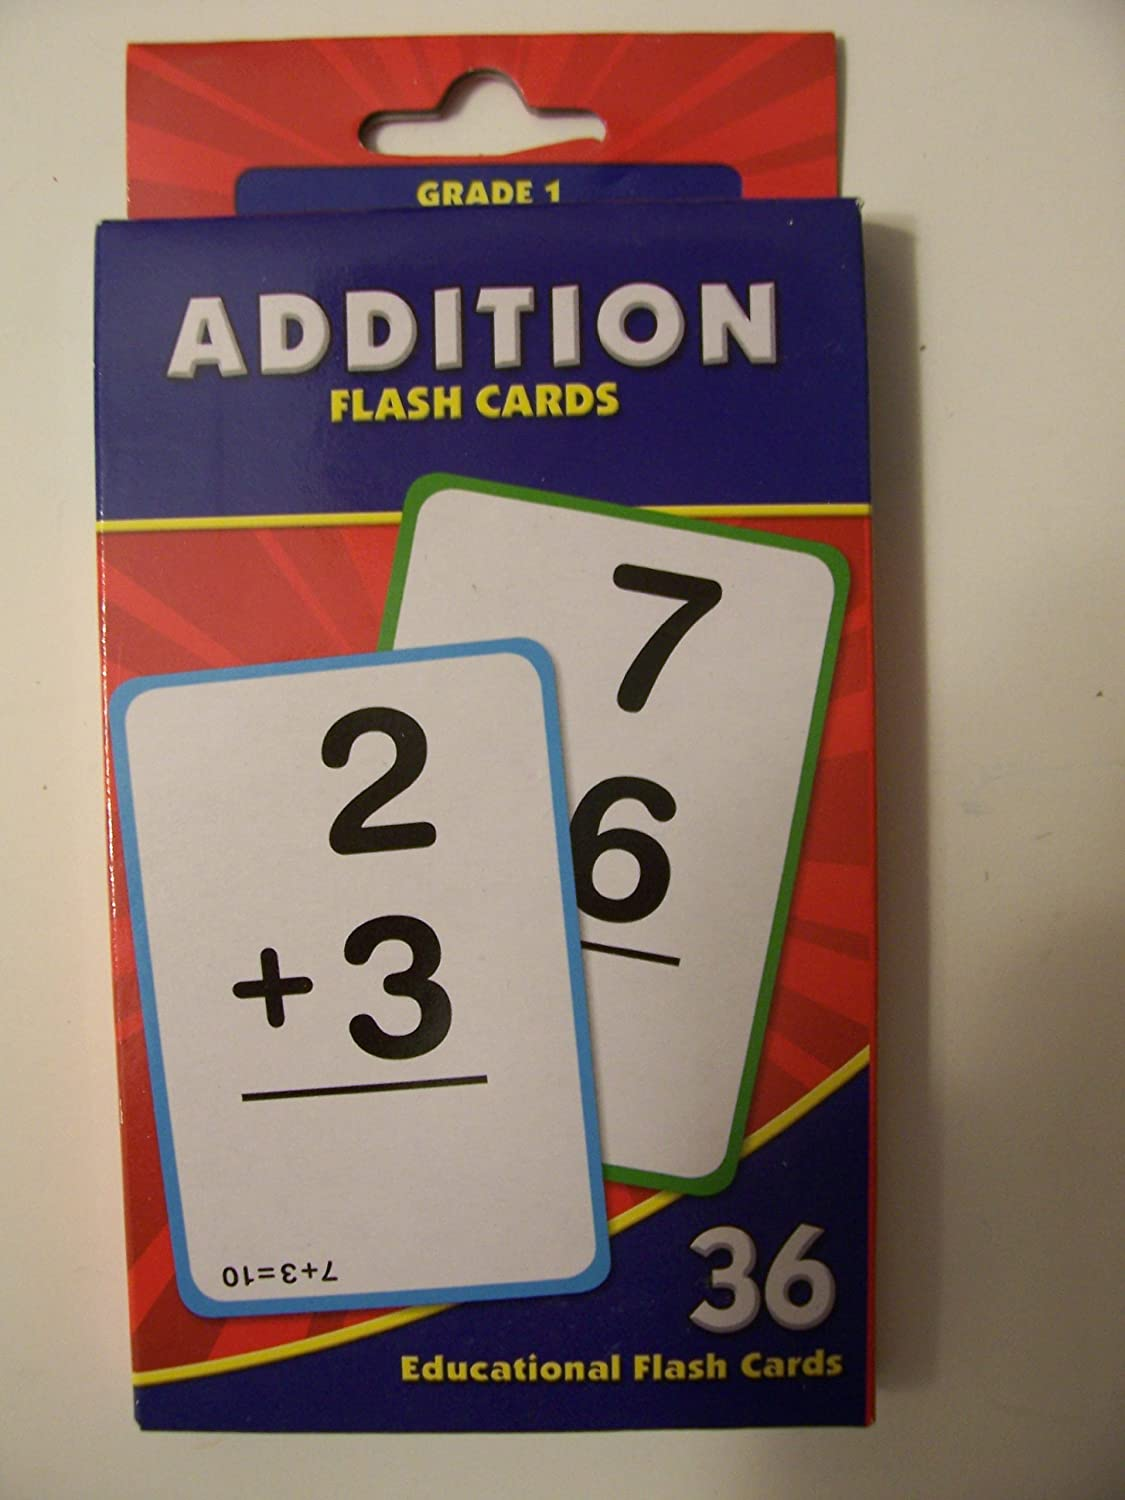 Educational Flash Cards ~ Addition (36 Flash Cards; Grade 1)